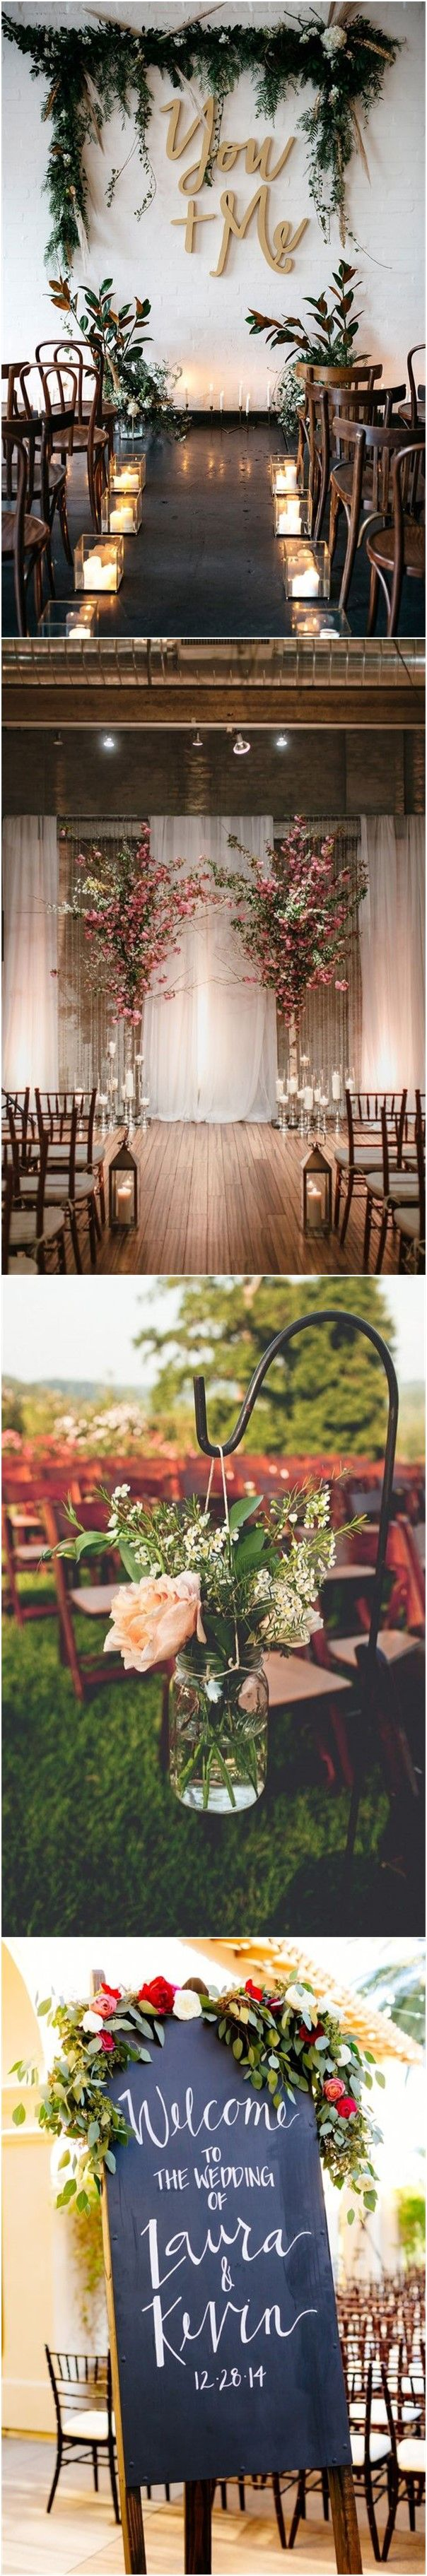 2017 06 registry office wedding vows examples - Country Weddings 25 Rustic Outdoor Wedding Ceremony Decorations Ideas See More